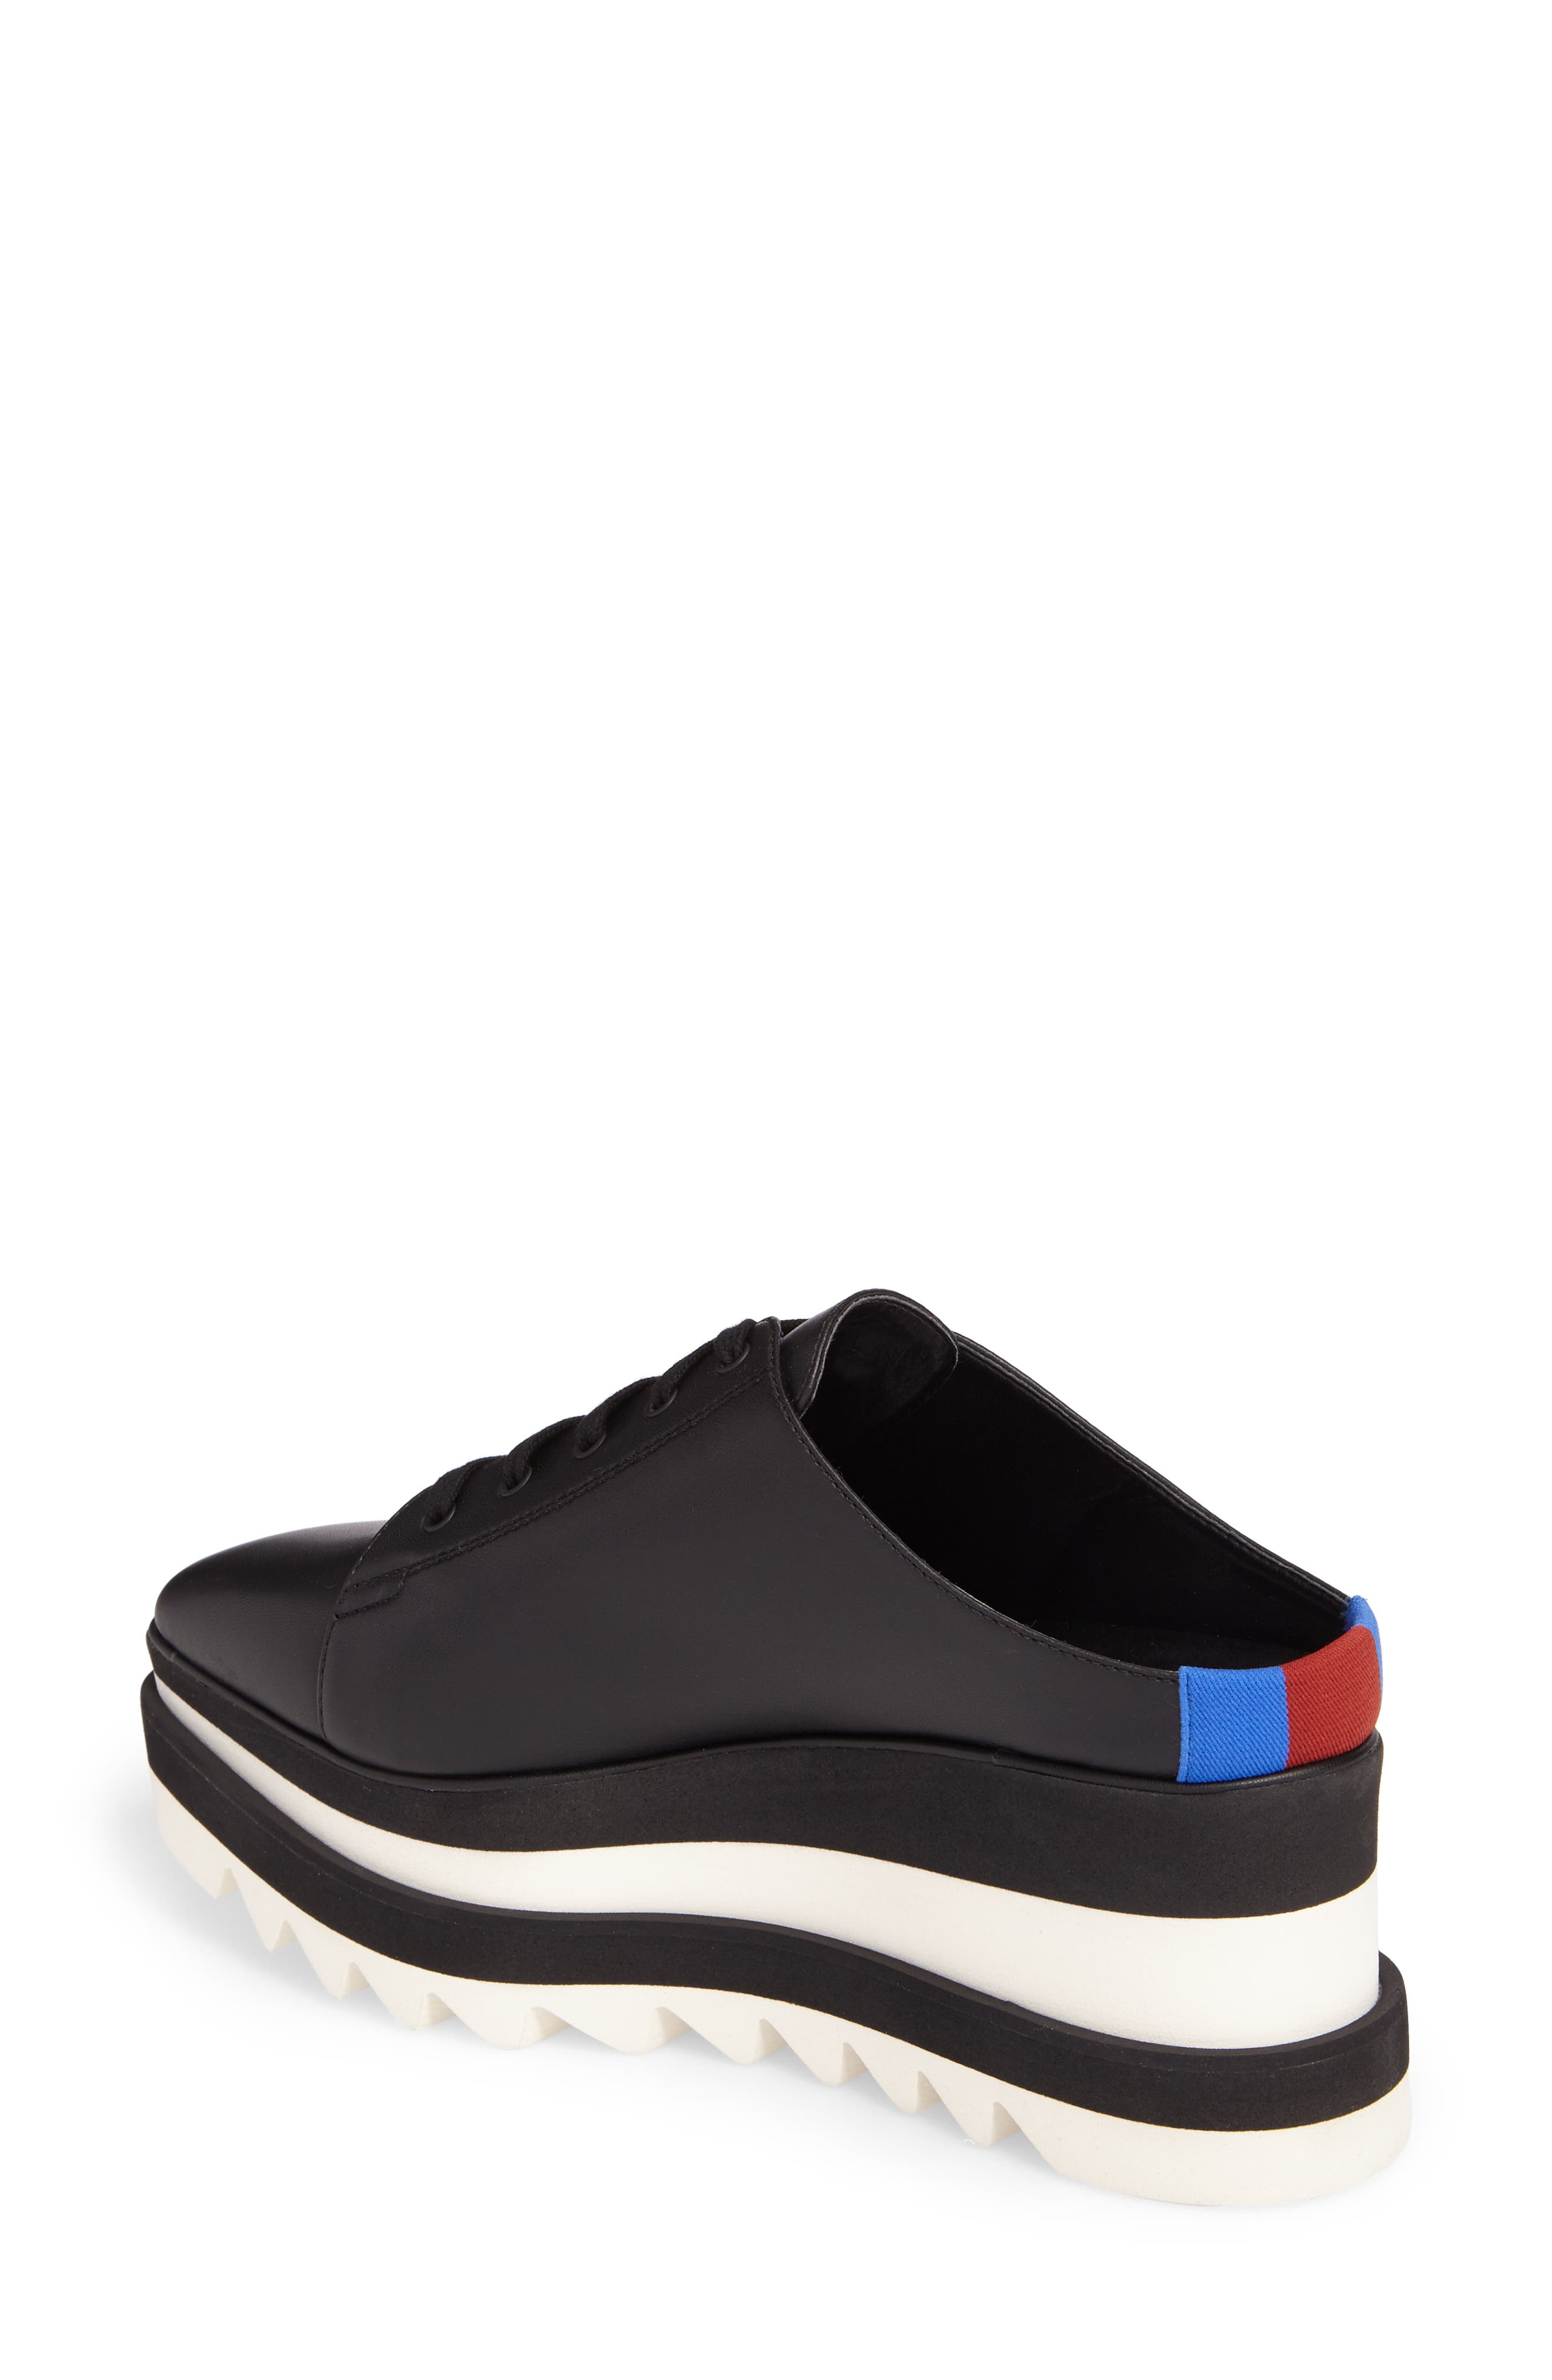 Alternate Image 2  - Stella McCartney Sneak-Elyse Flatform Mule (Women)